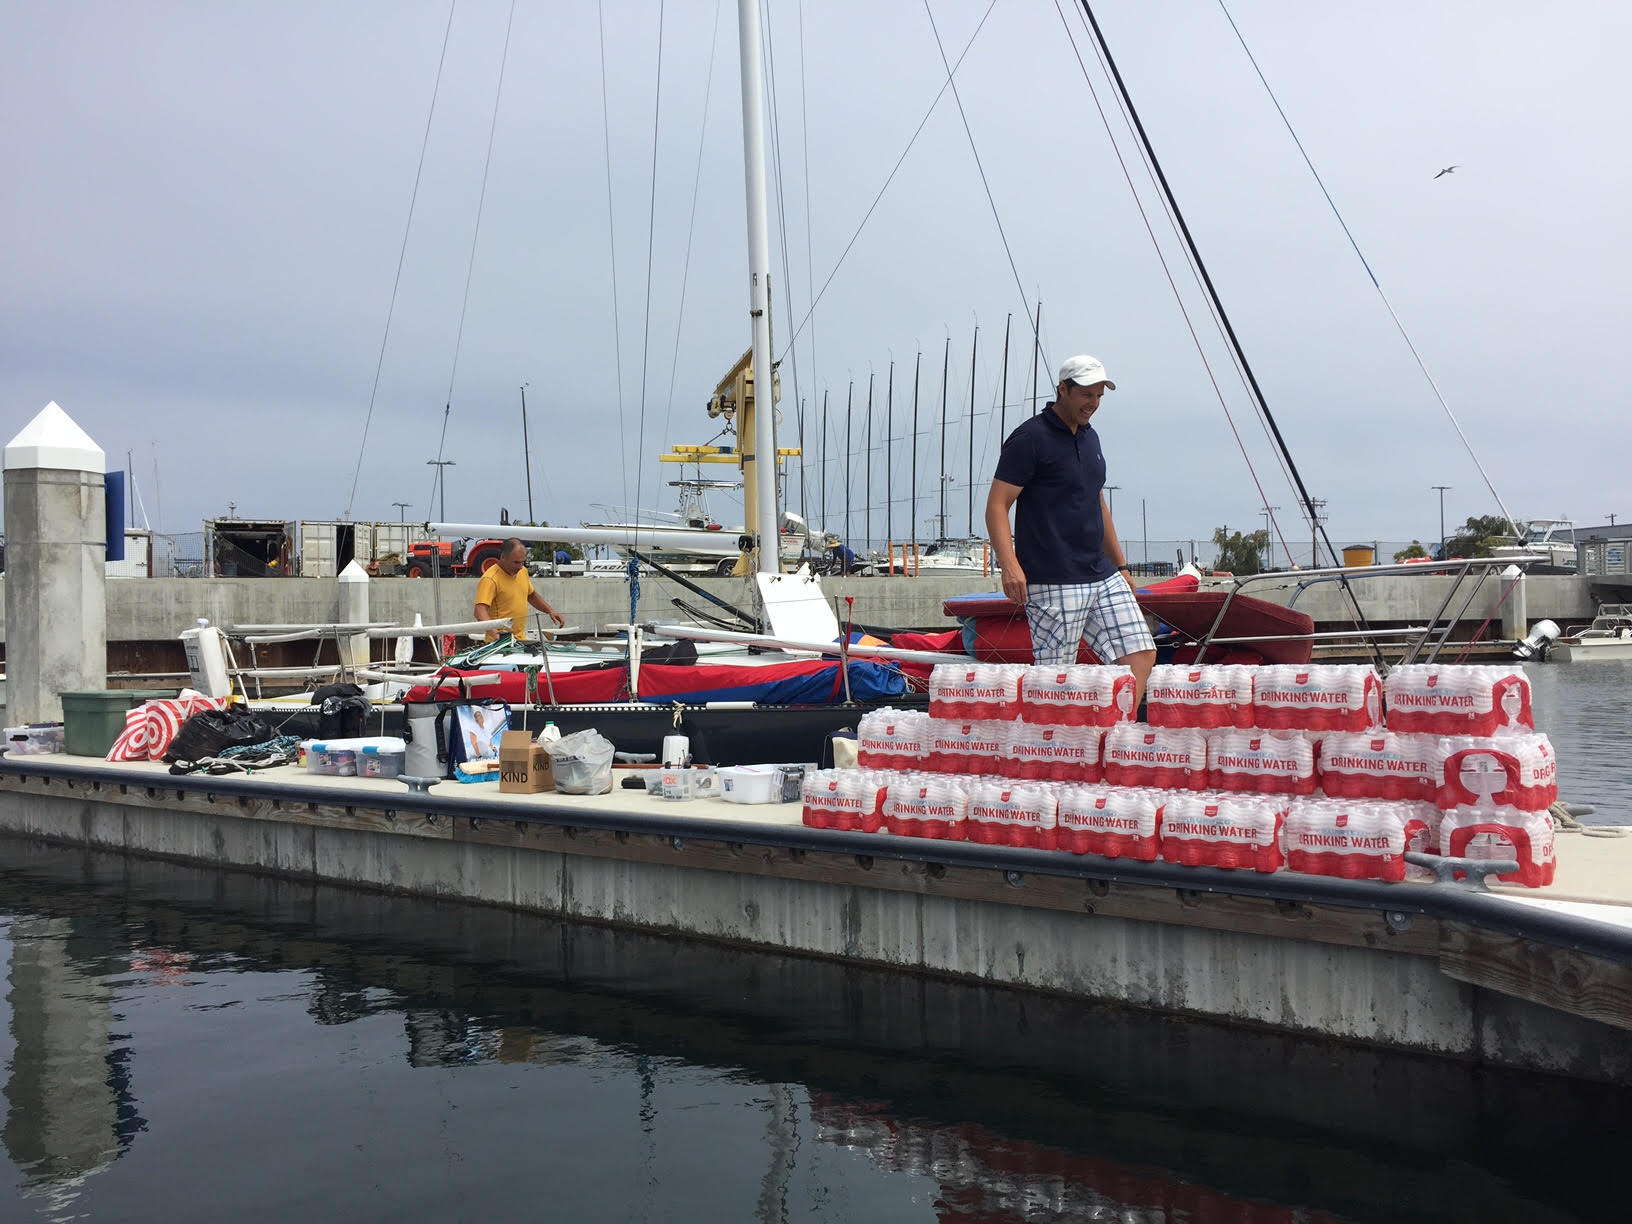 That's 600 bottles of water. Somehow we need to stuff all that into the boat!